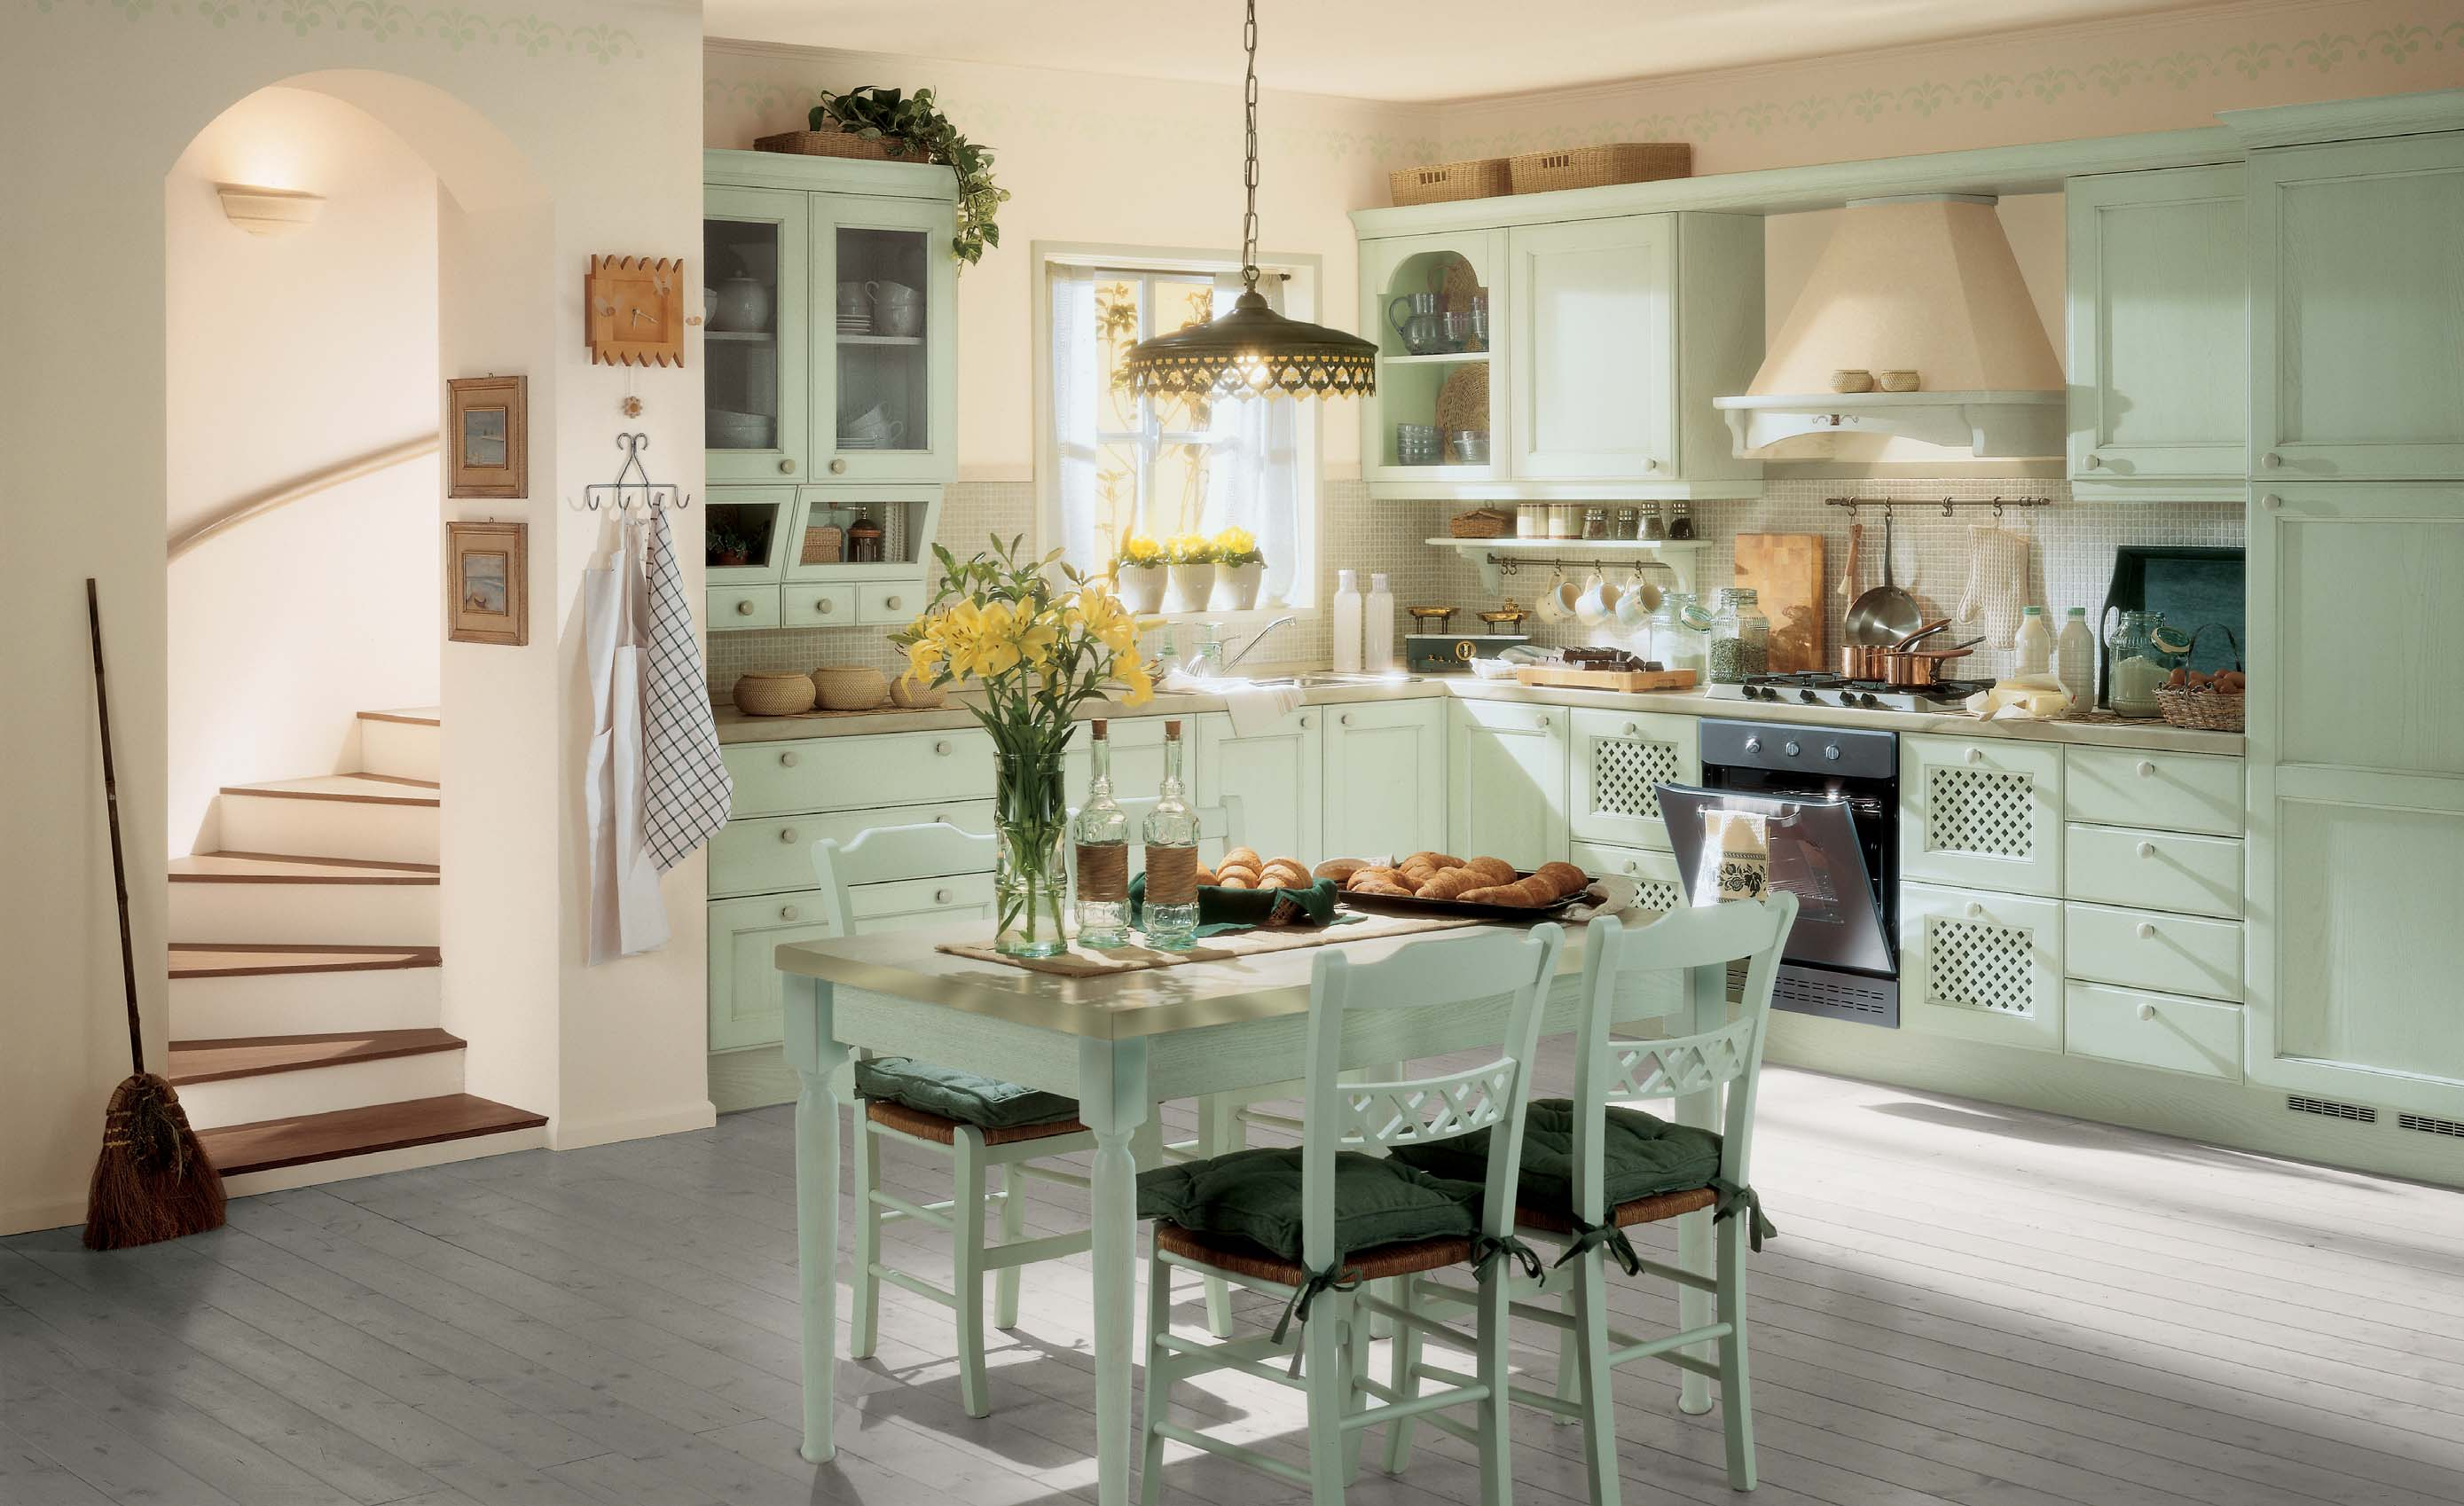 Uncategorized Small Country Kitchen Designs small country kitchen designs pictures large and beautiful photo 2